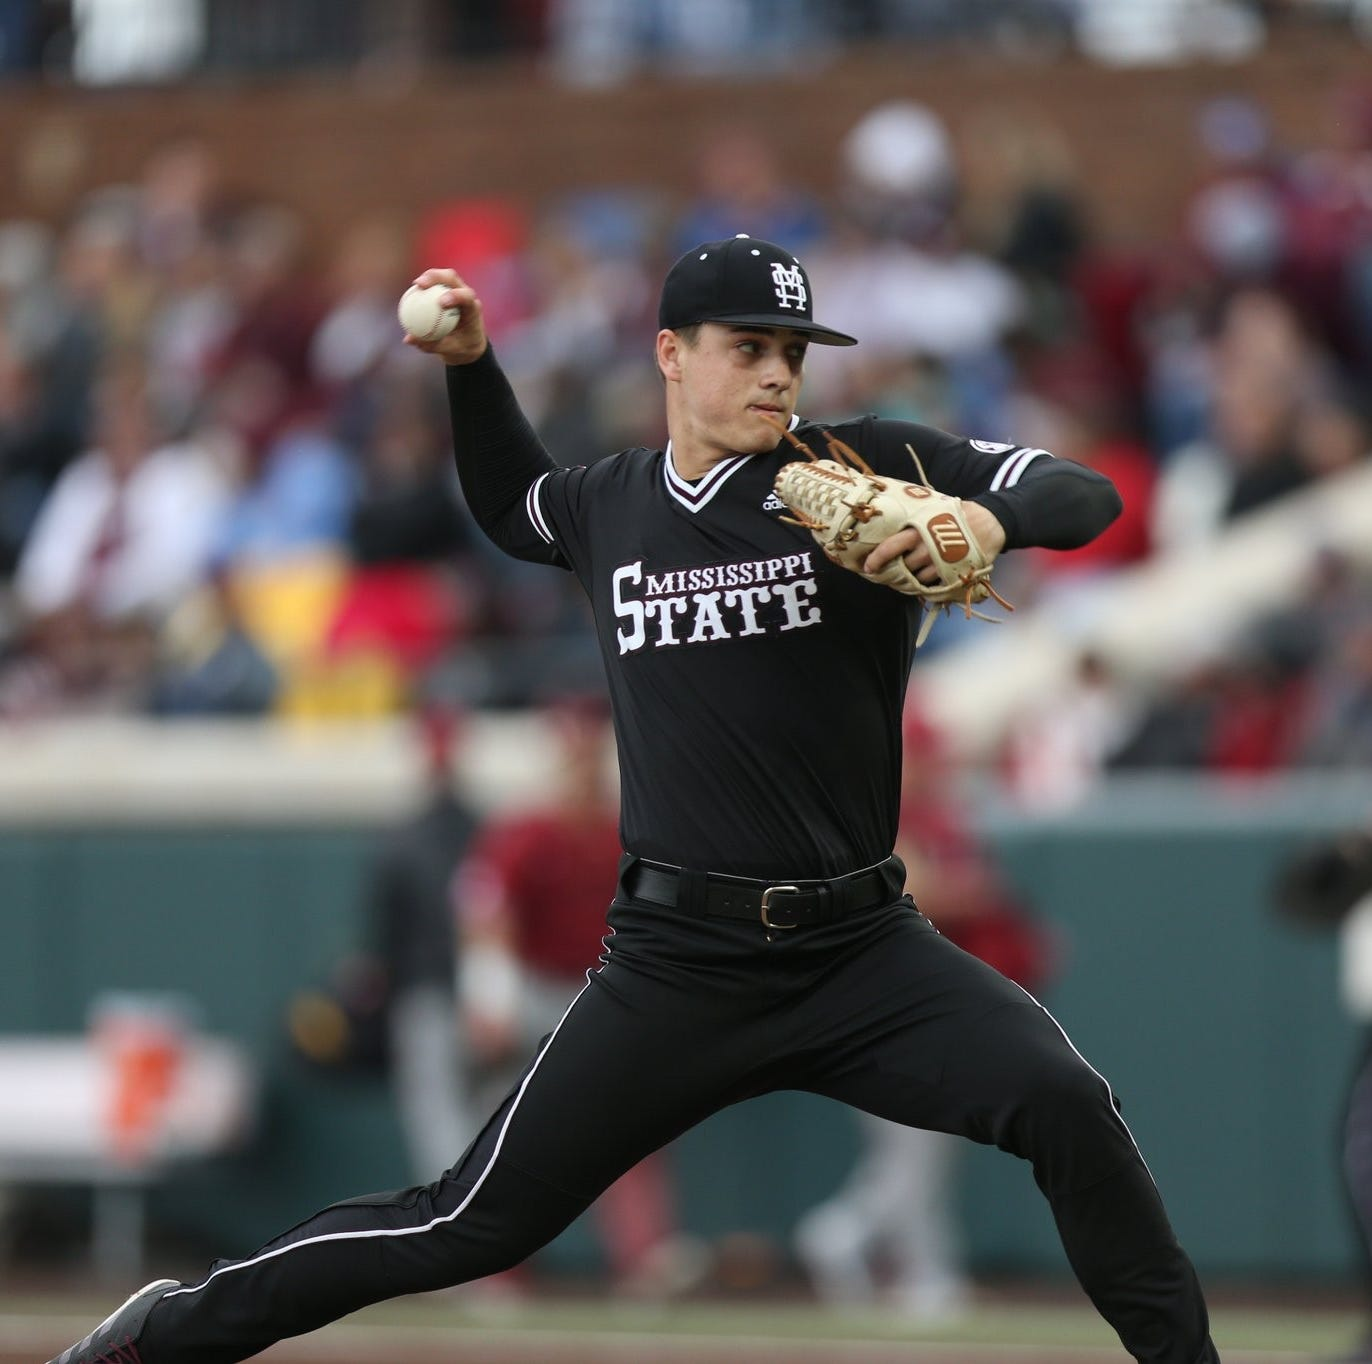 Mississippi State baseball completes Super Bulldog sweep of Alabama